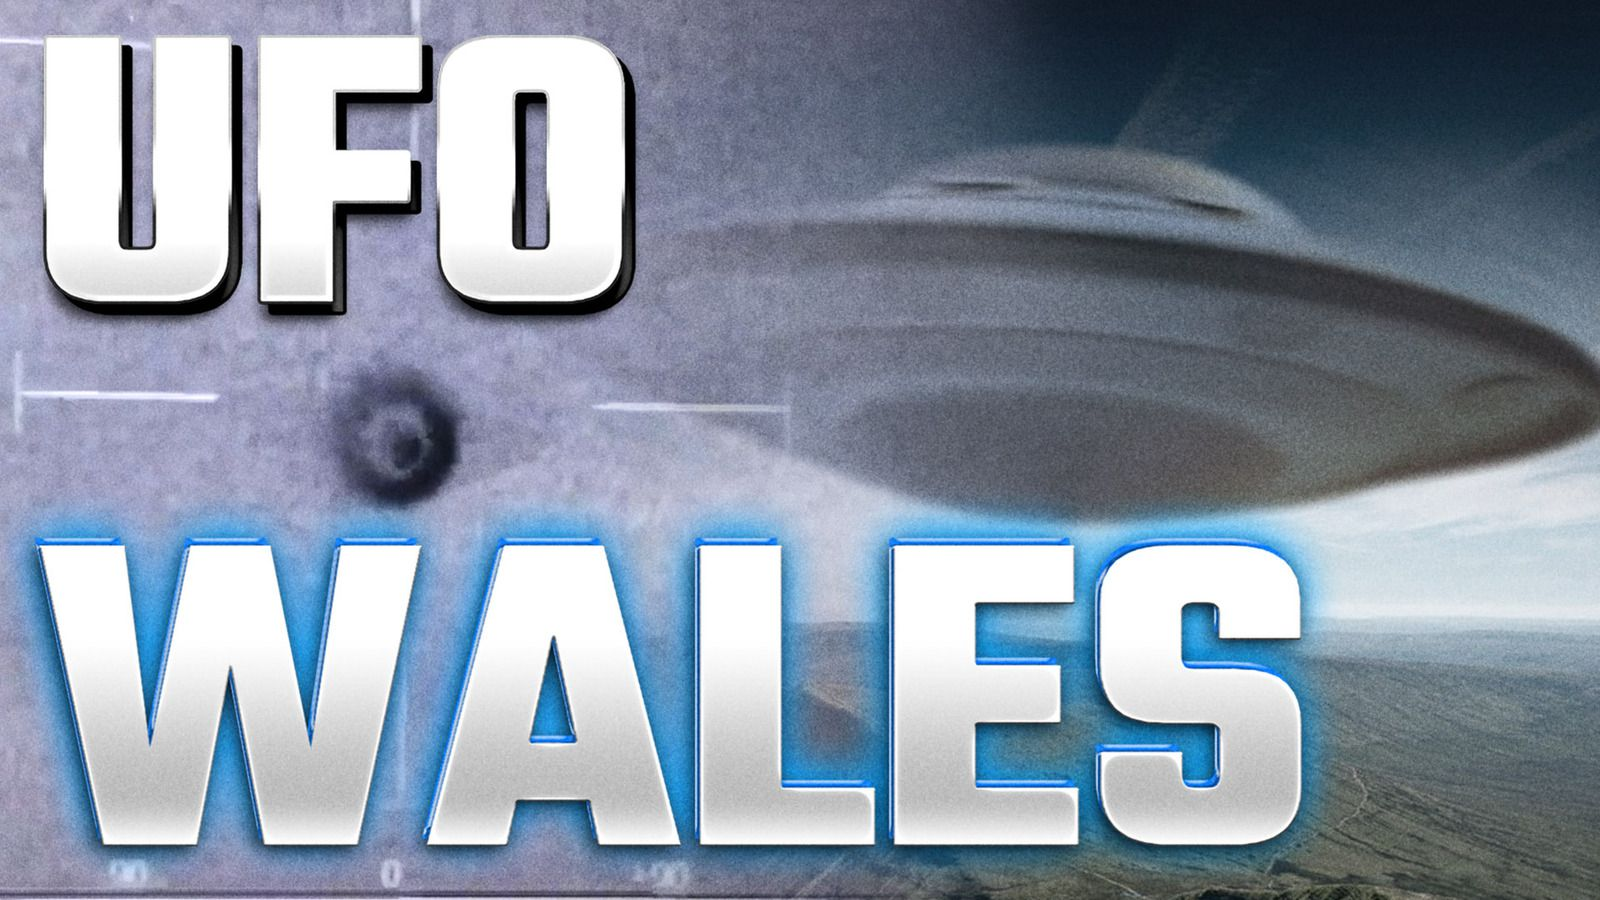 UFO Sighting News : UFO Filmed By Police Helicopter in Wales on Thermal Camera in 2016 👽